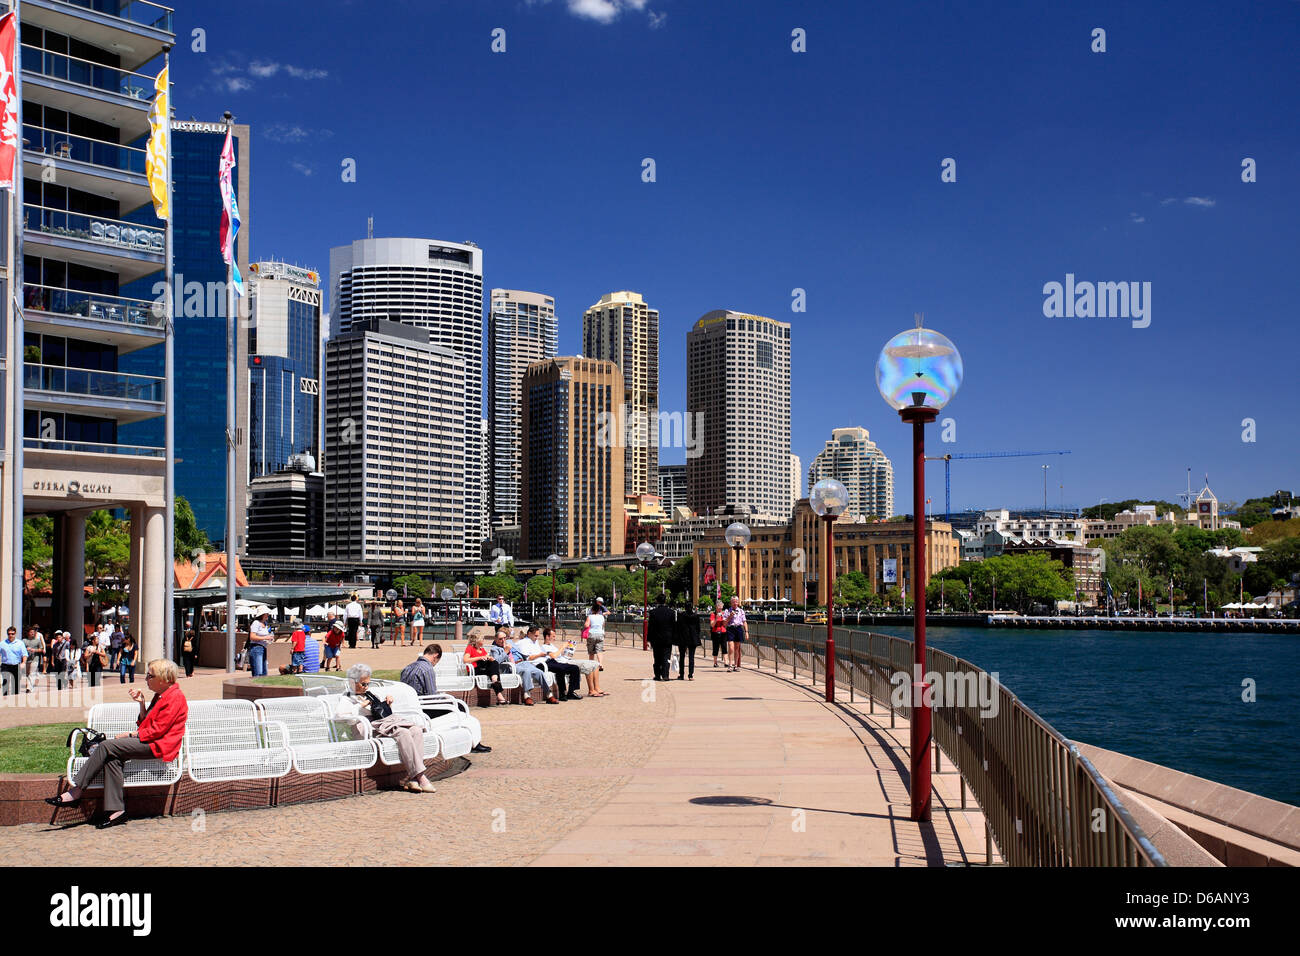 Circular Quay, Sydney ,showing the city skyline and harbour. Australia - Stock Image